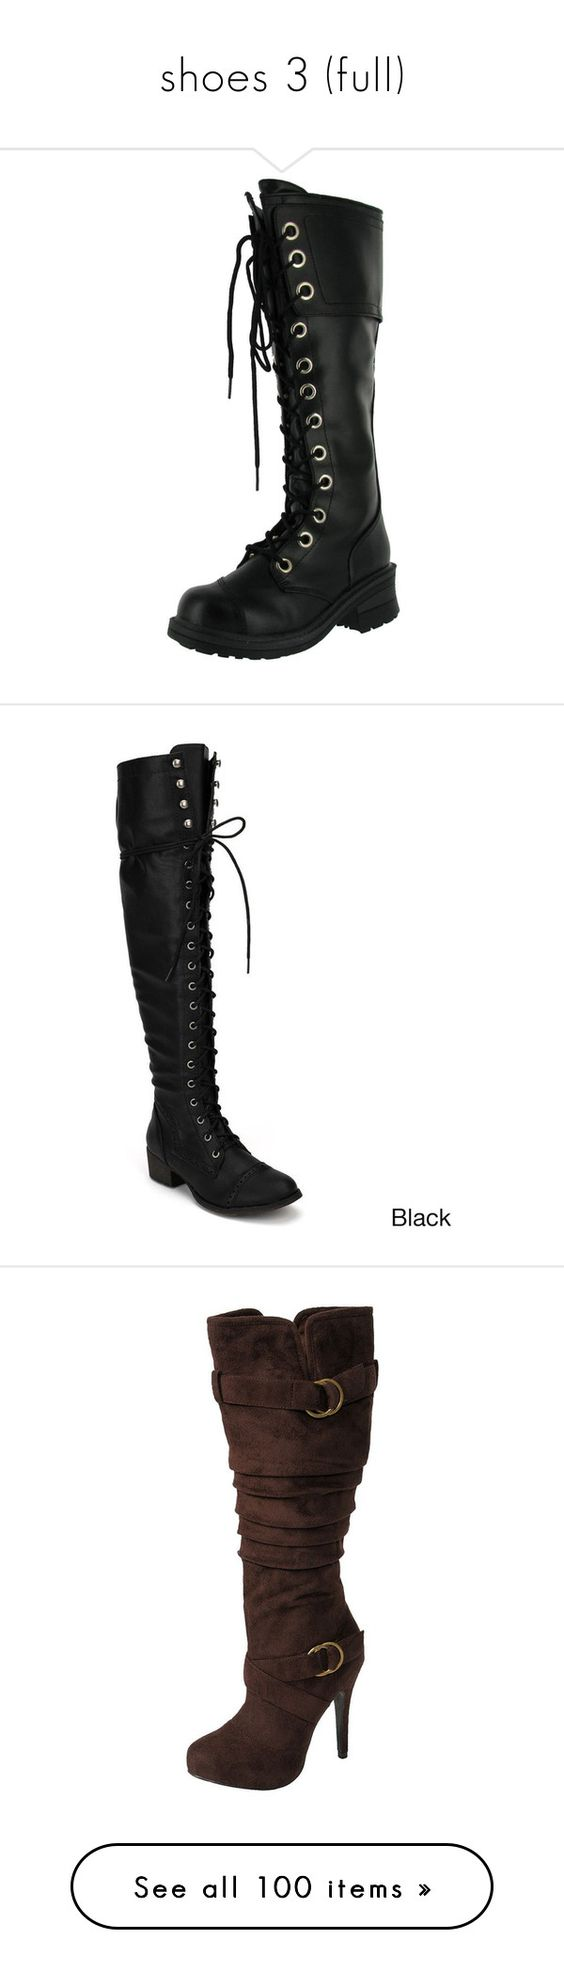 """""""shoes 3 (full)"""" by gone-girl ❤ liked on Polyvore featuring shoes, boots, army military boots, military style boots, laced combat boots, military style combat boots, combat boots, tory burch, botas and genuine leather boots"""